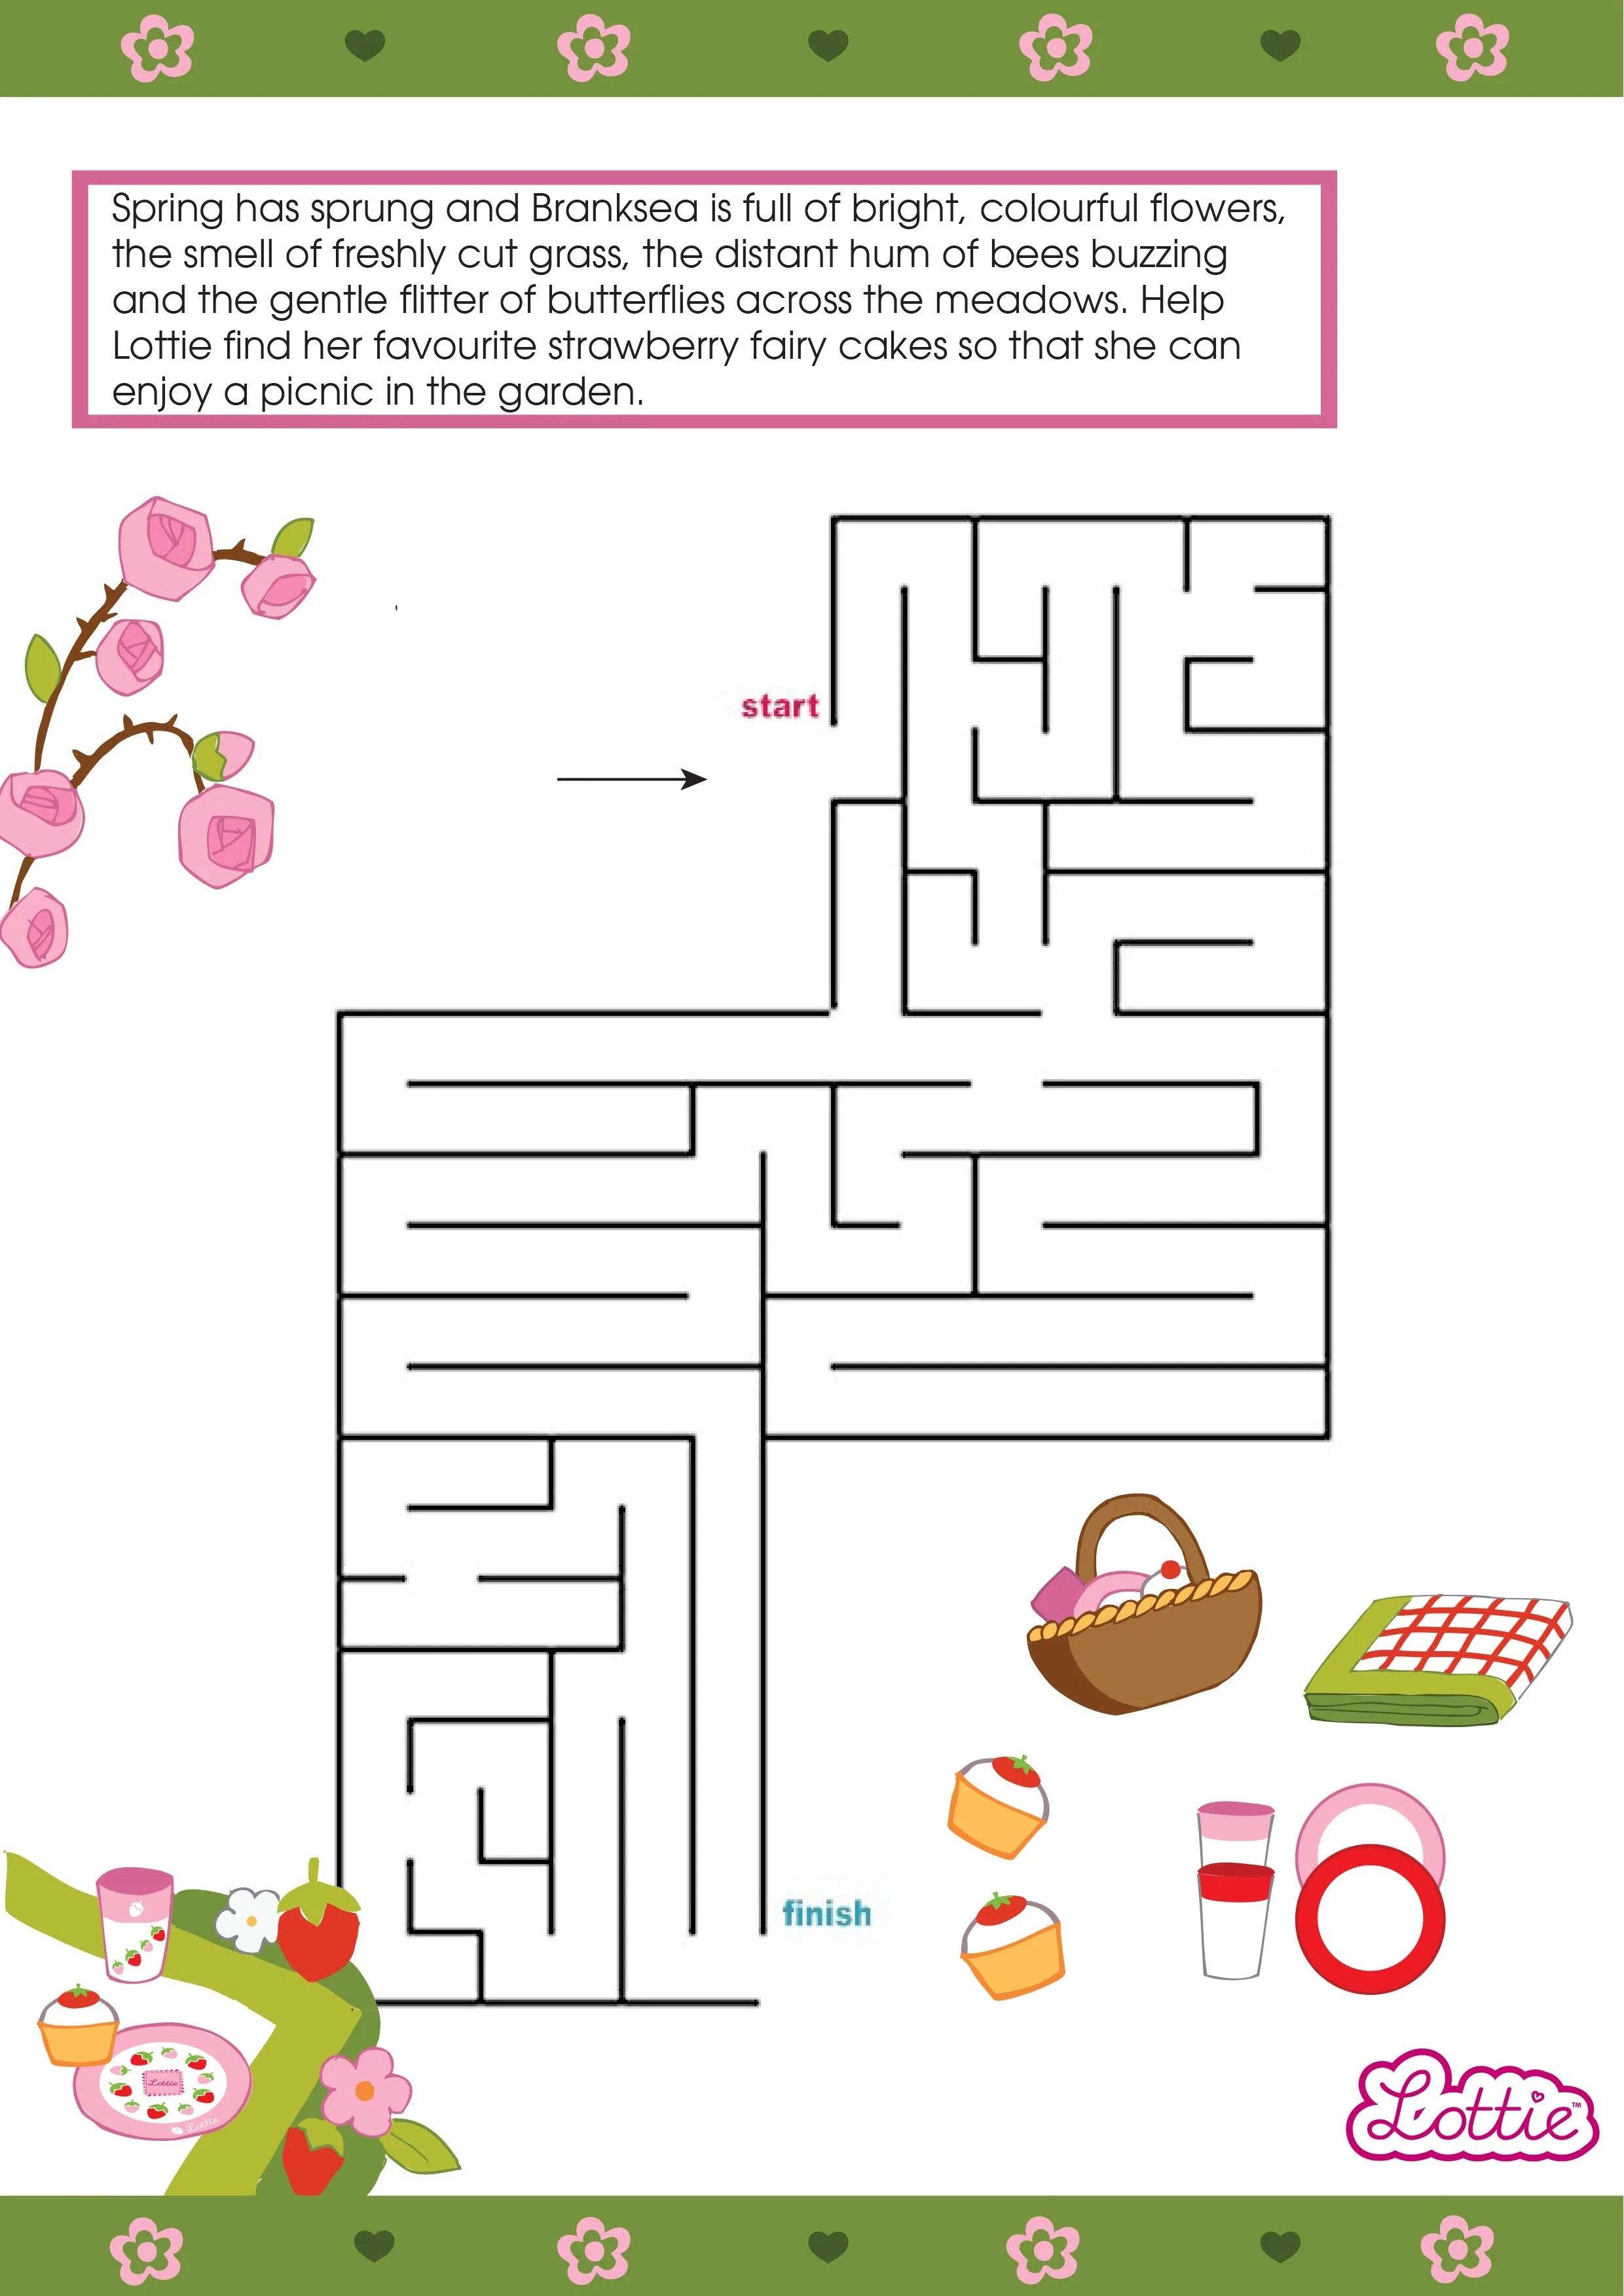 English Country Garden Lottie Printable Maze Lottie Dolls